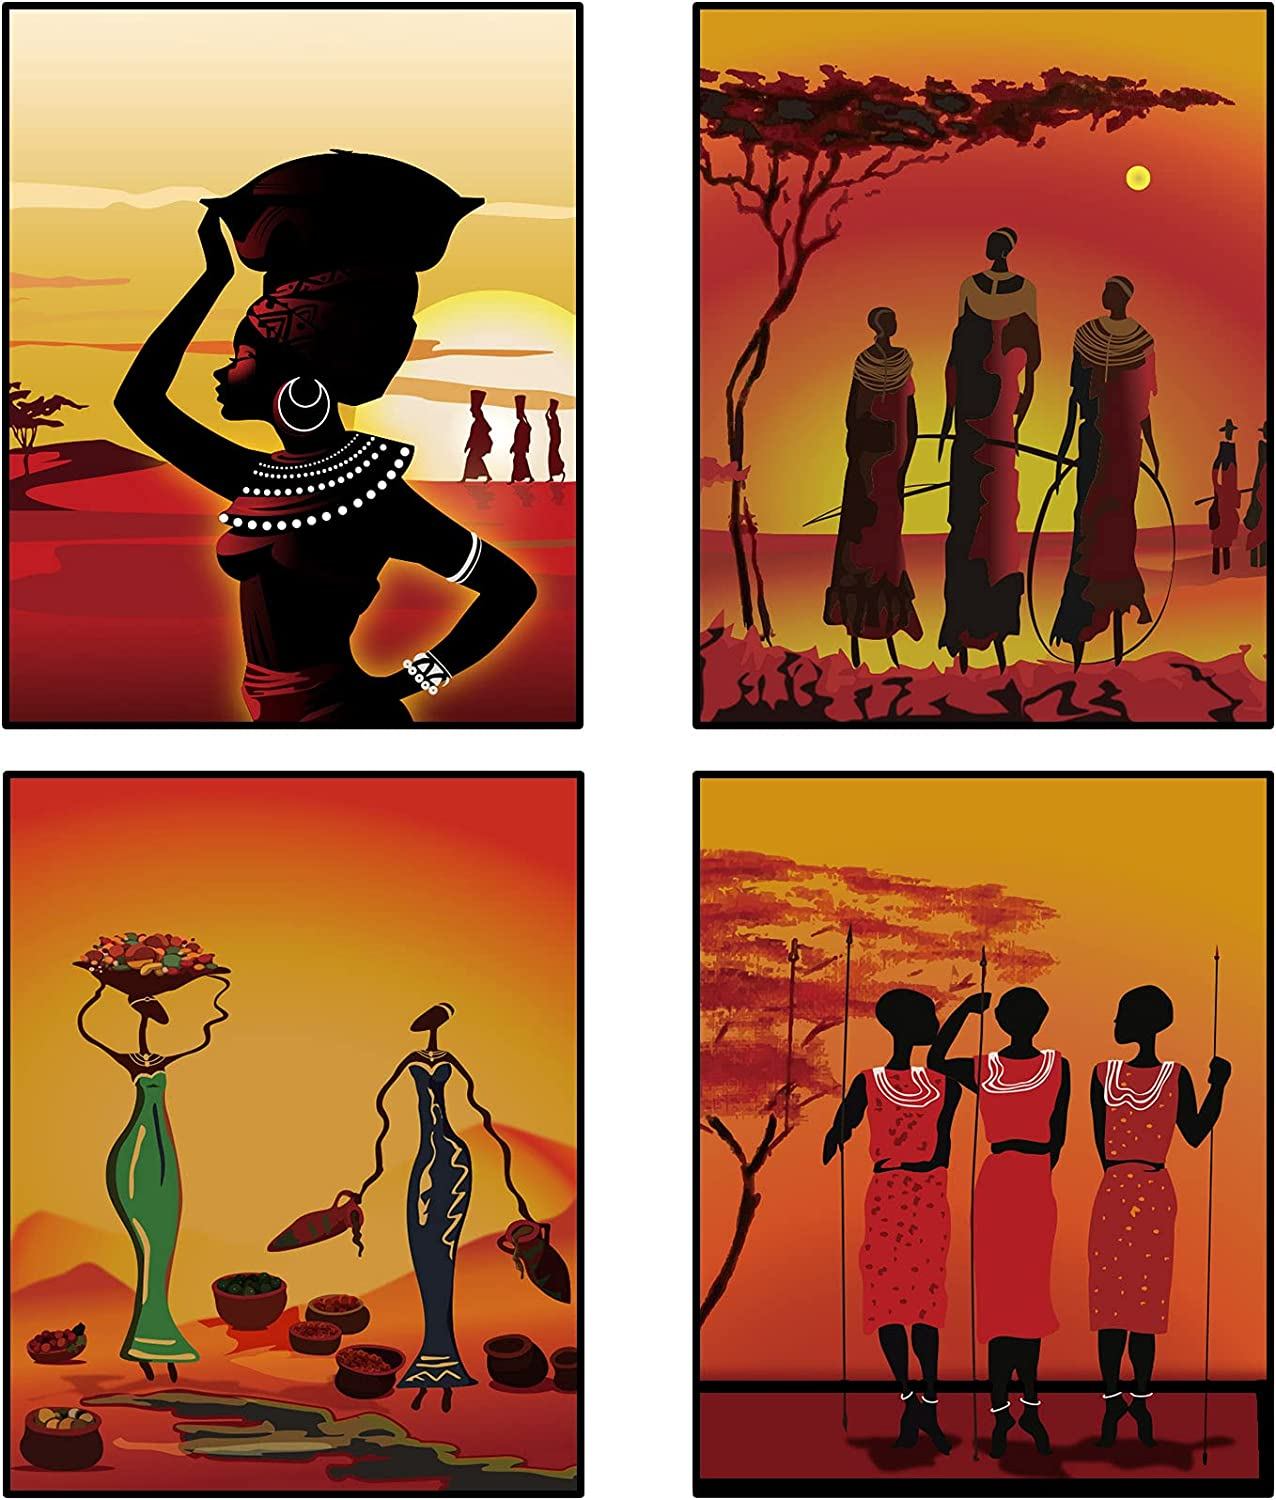 4 Pieces African American Women Wall Art Paintings Black Women Wall Prints Ethnic Ancient Theme Posters Retro Style African Wall Art Prints for Living Room Bedroom Decors, 10 x 8 Inches, Unframed